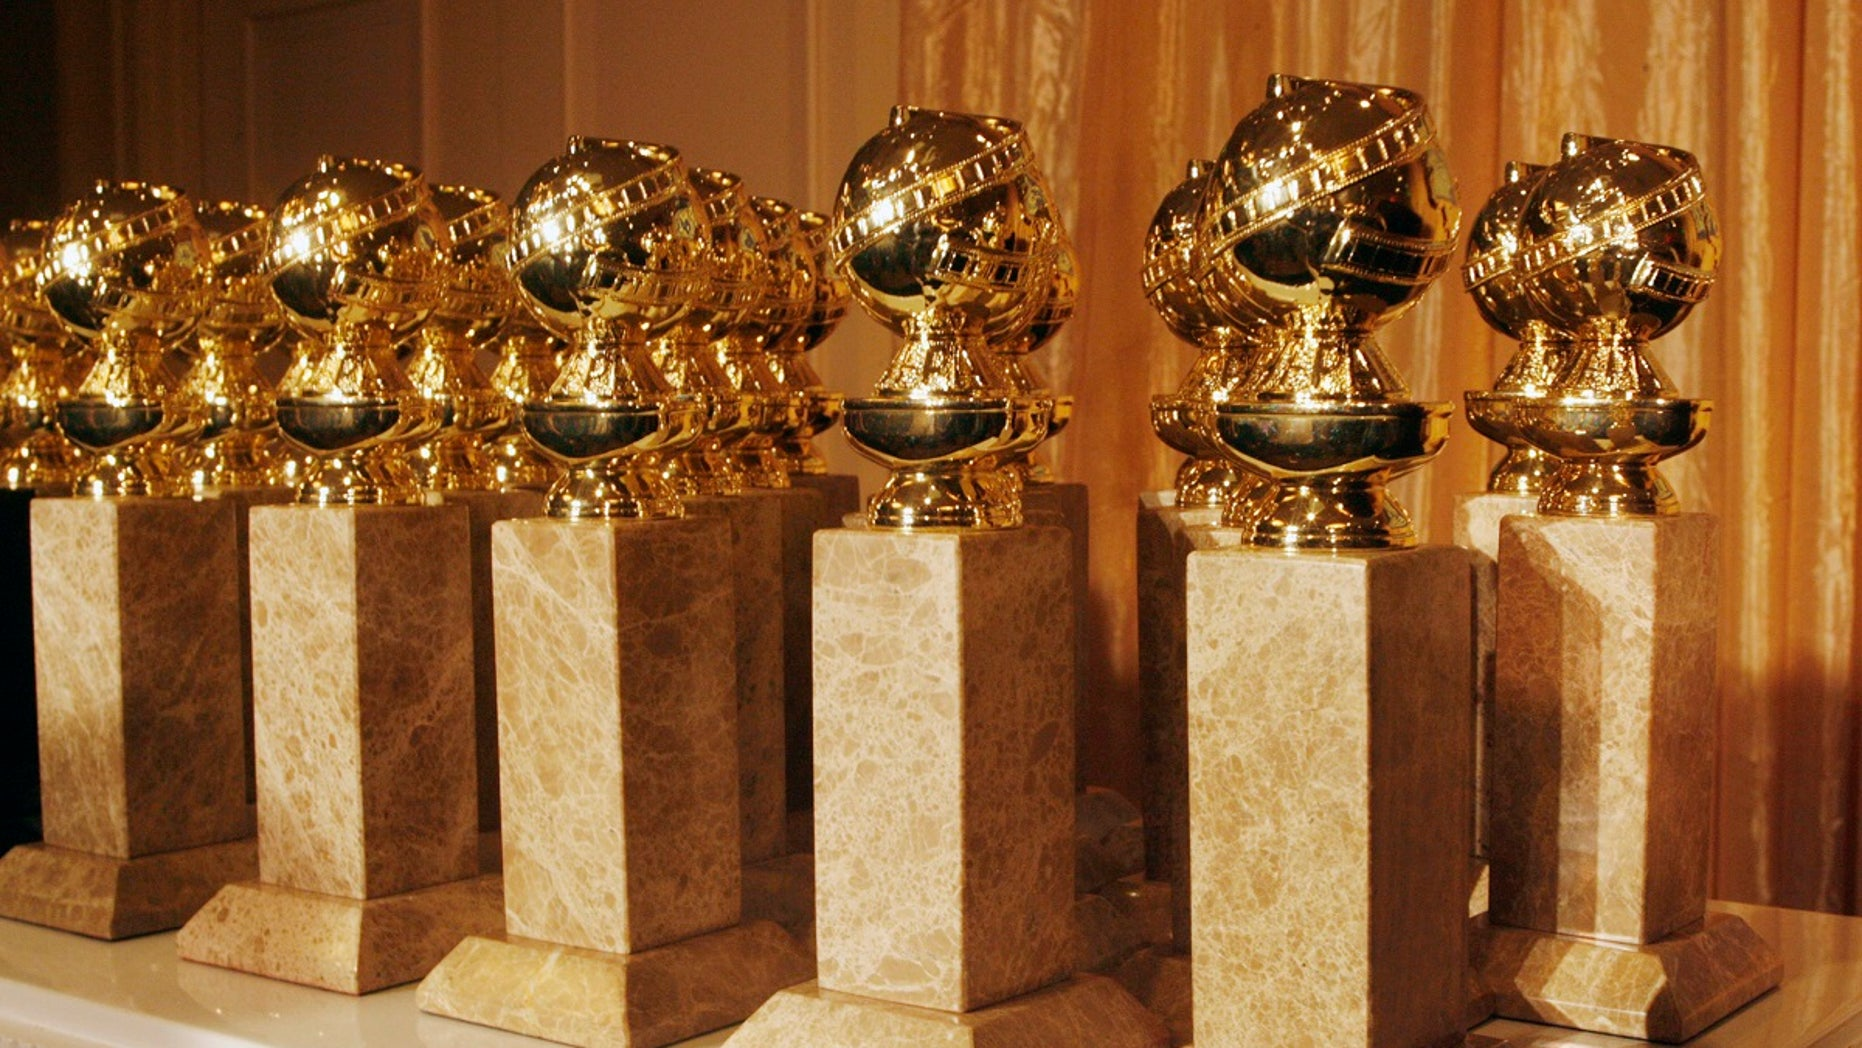 The Golden Globes will air Sunday at 8 p.m. ET on NBC.